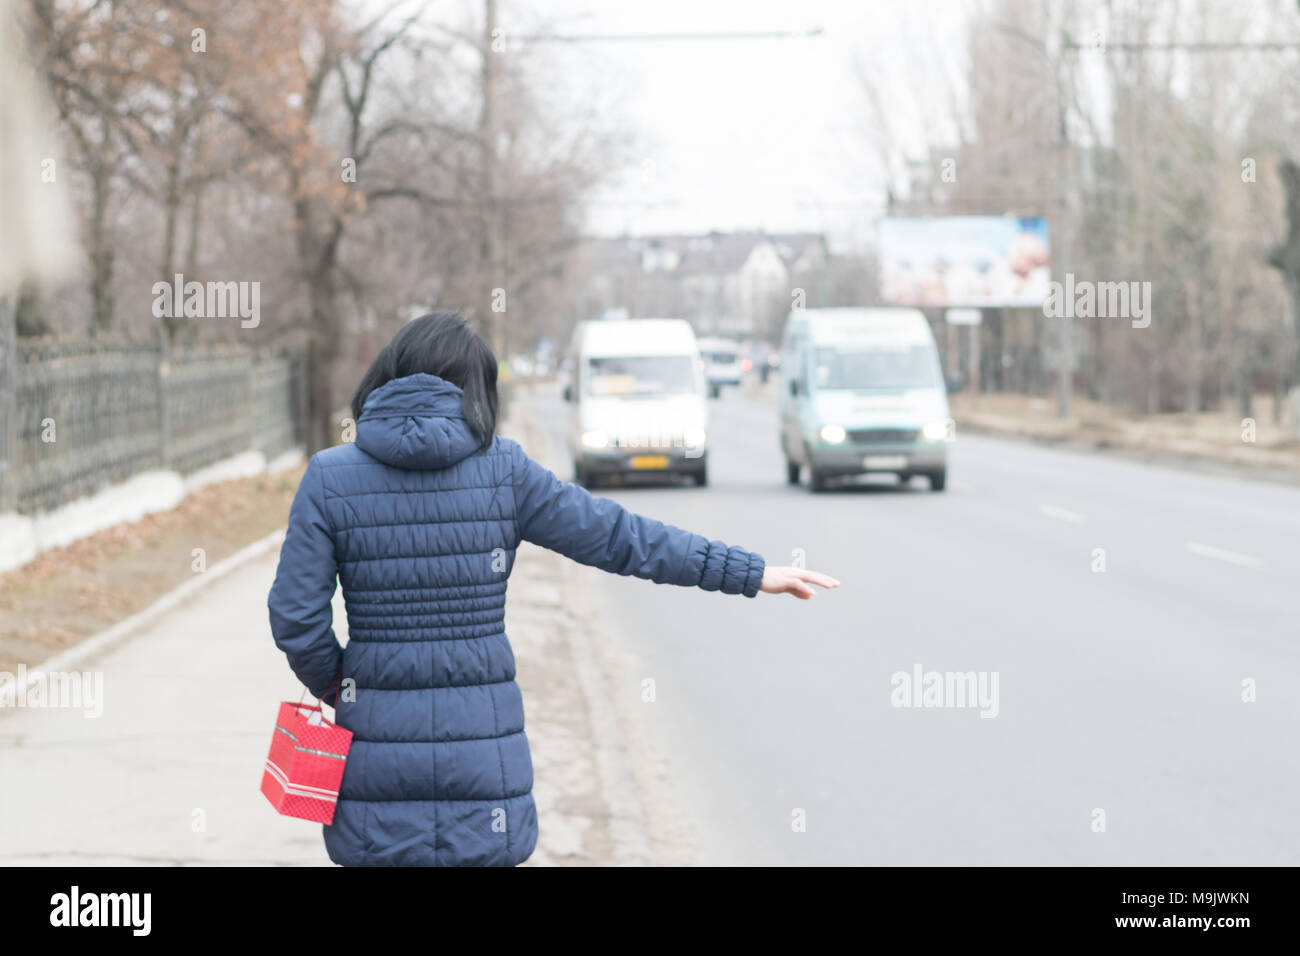 CHISINAU, MOLDOVA - 3 JANUARY, 2017: A lady trying to stop a minibus with the usual sign in Chisinau- by lifting an arm. - Stock Image